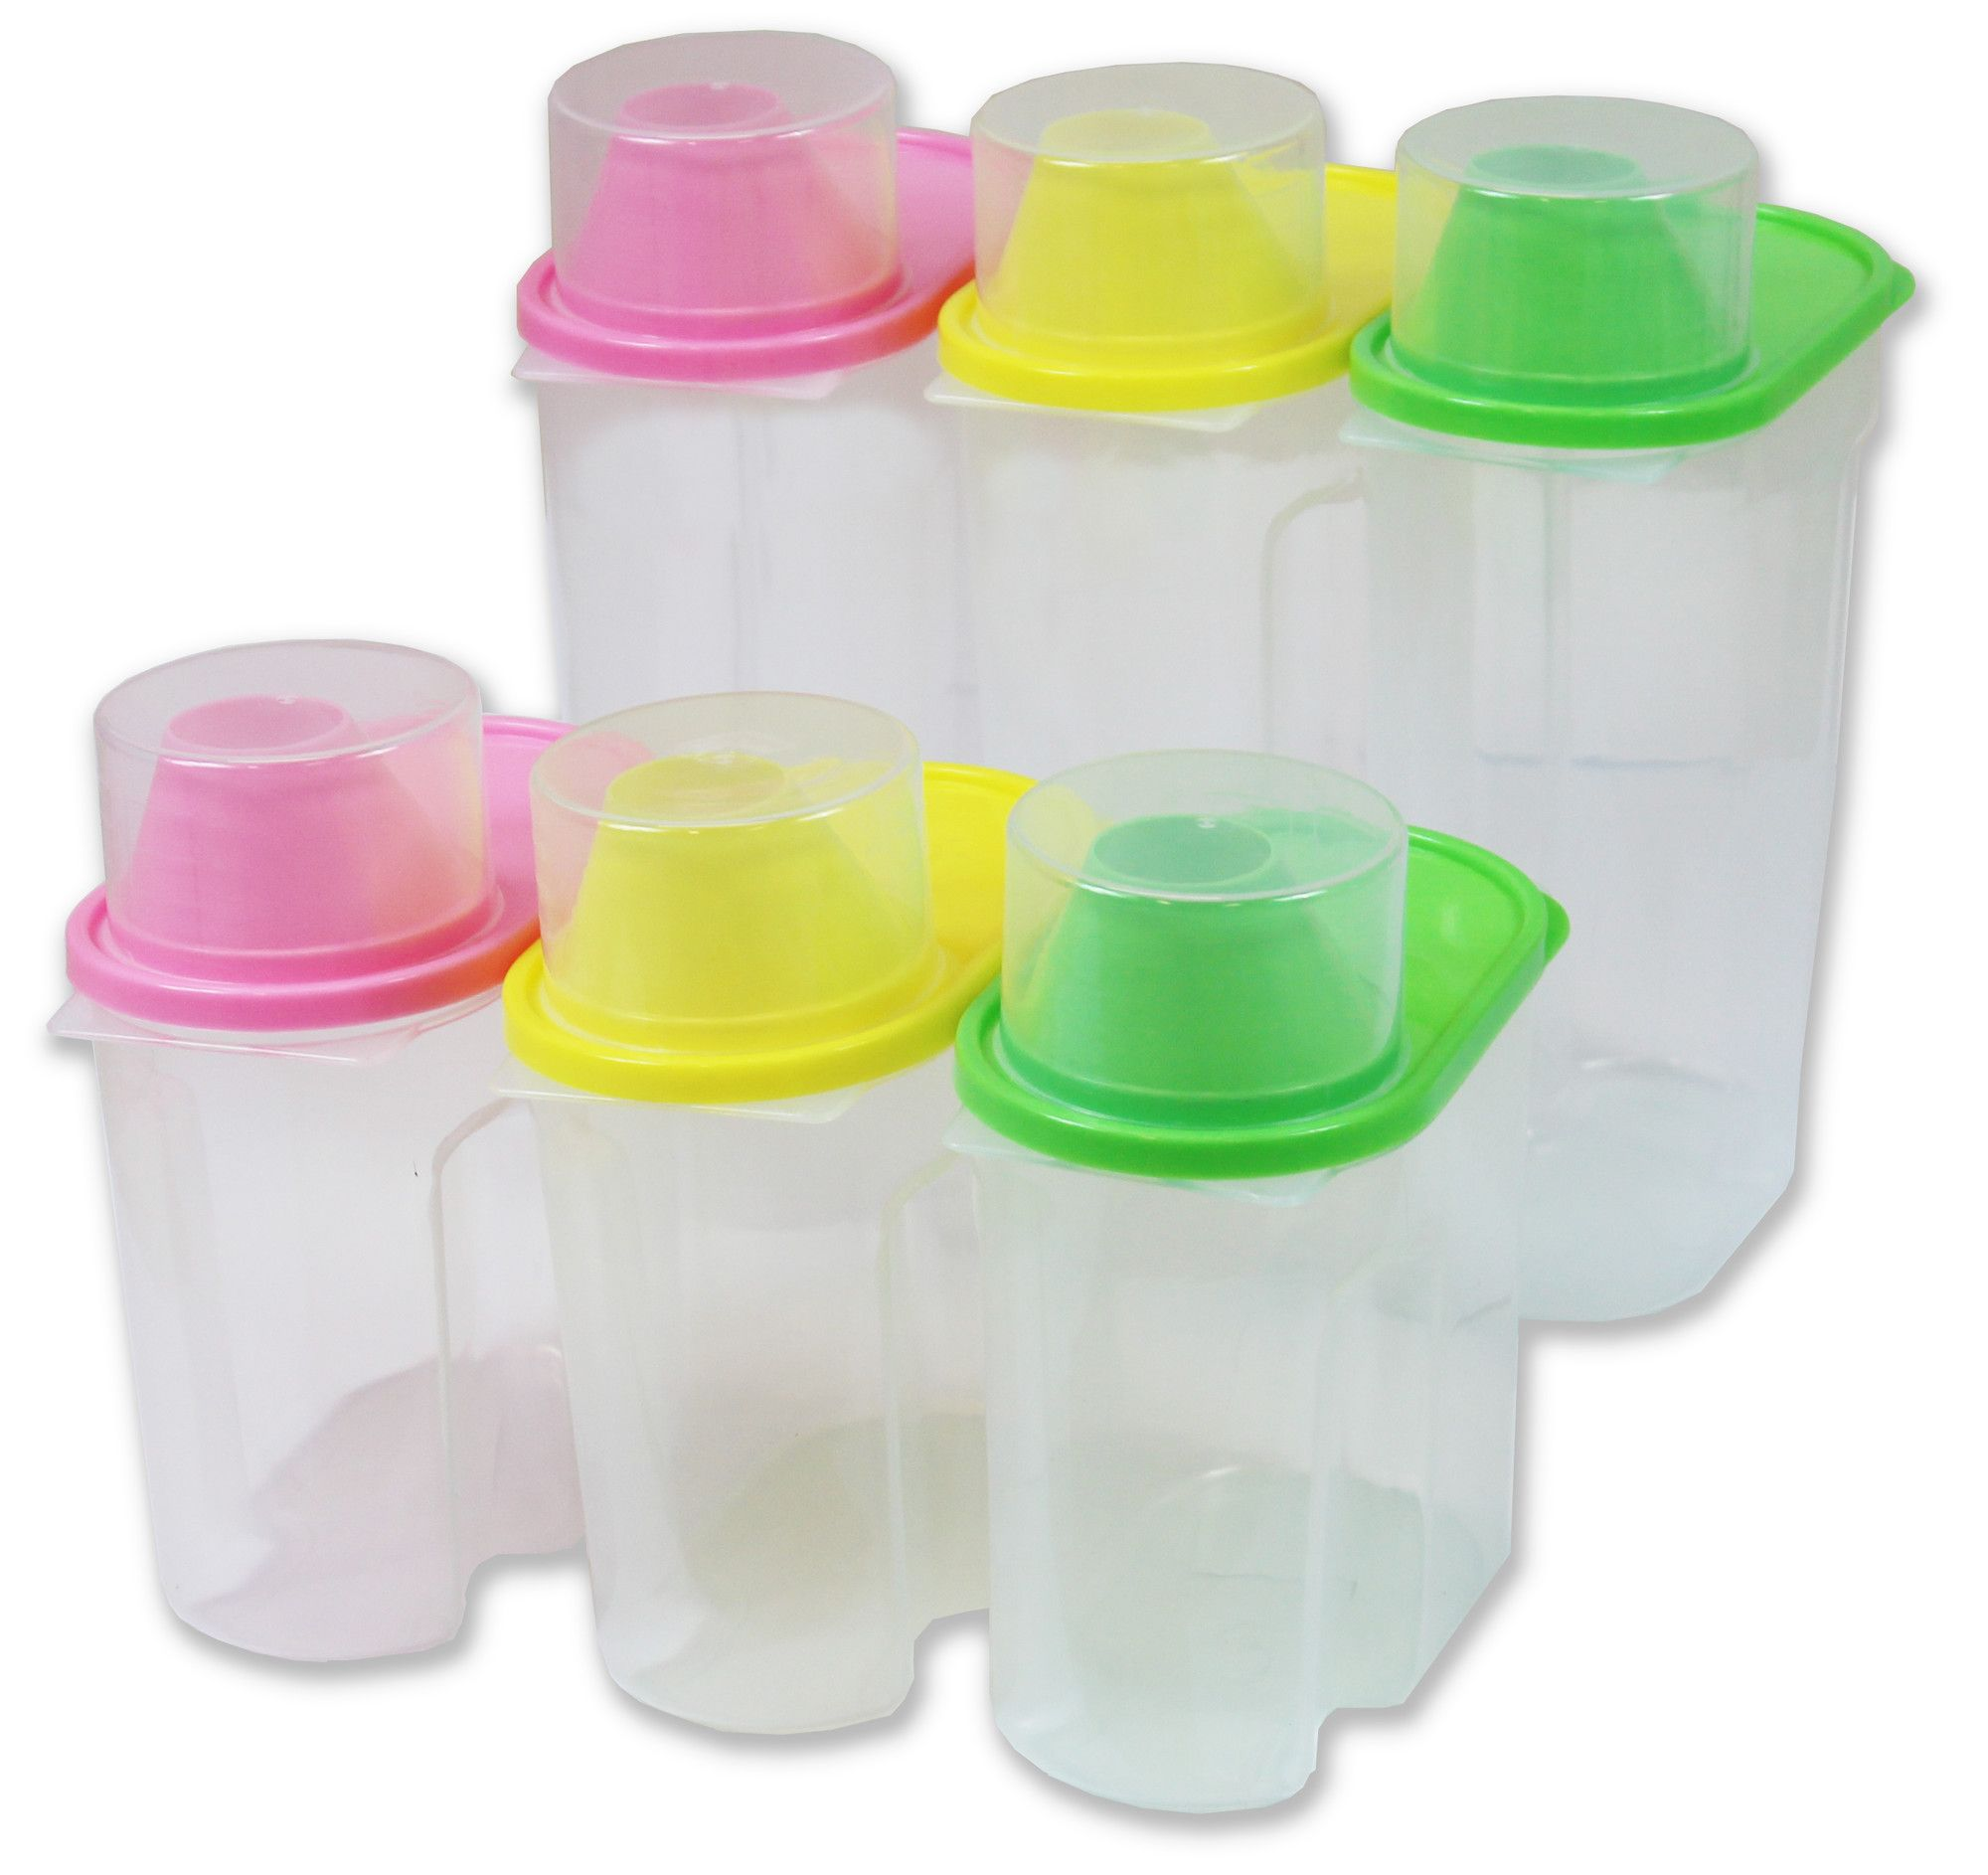 Plastic Kitchen Food Saver 12 Piece Food Storage Container Set